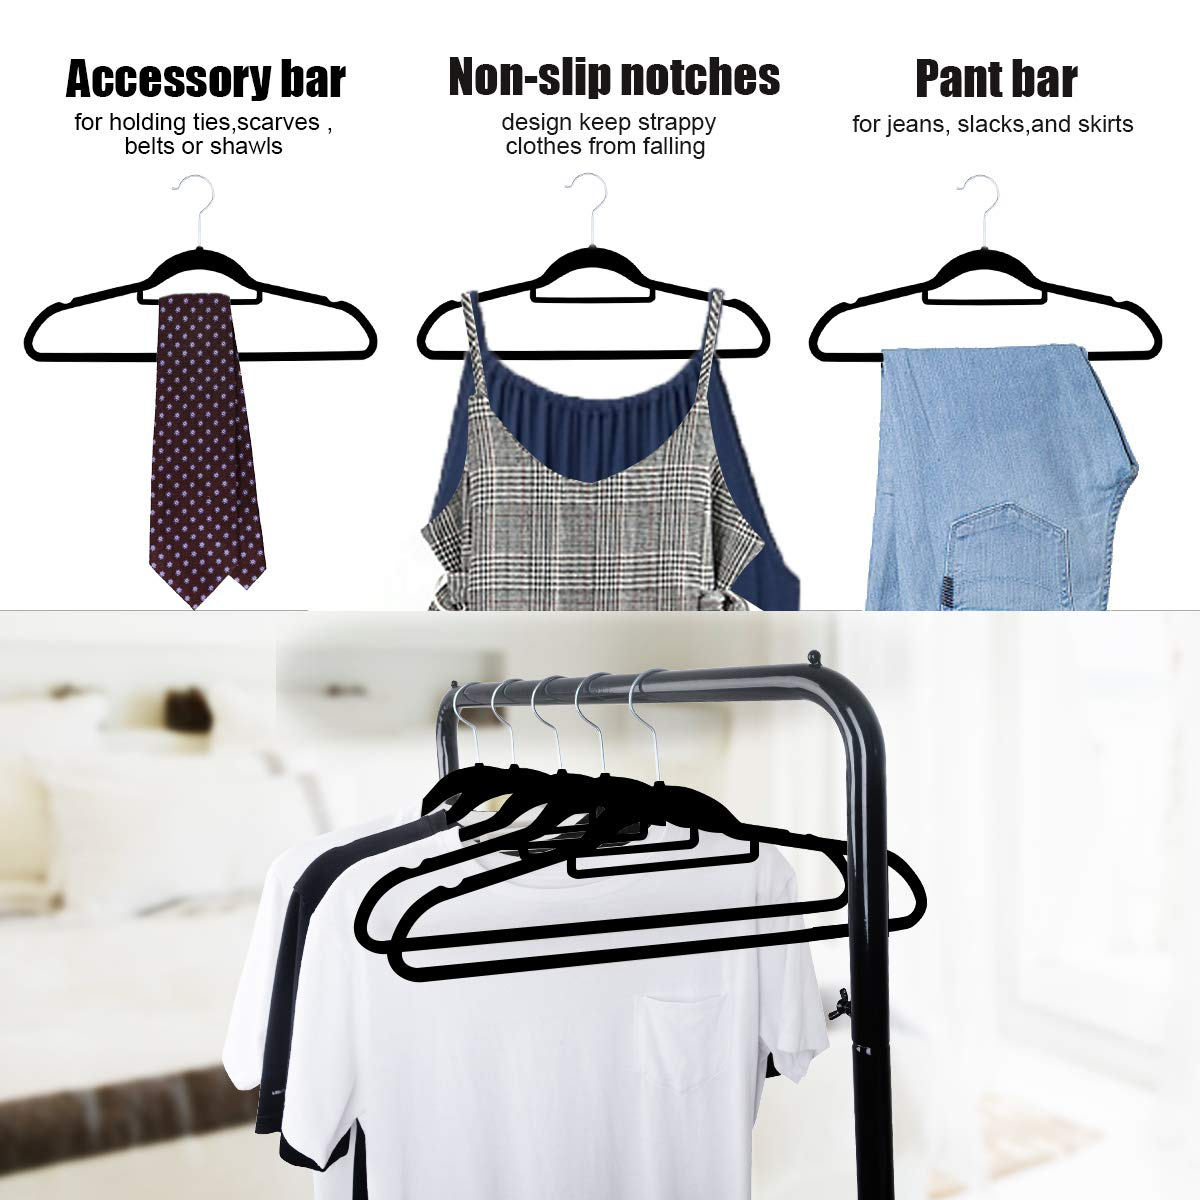 NUOKING Velvet Hangers 50 Pack Non-Slip Home Clothes Hangers Hold Up to 11 Lbs Suit Hanger Swivel Chrome Hook Coats Jackets Dress Shirt Pants (Black)